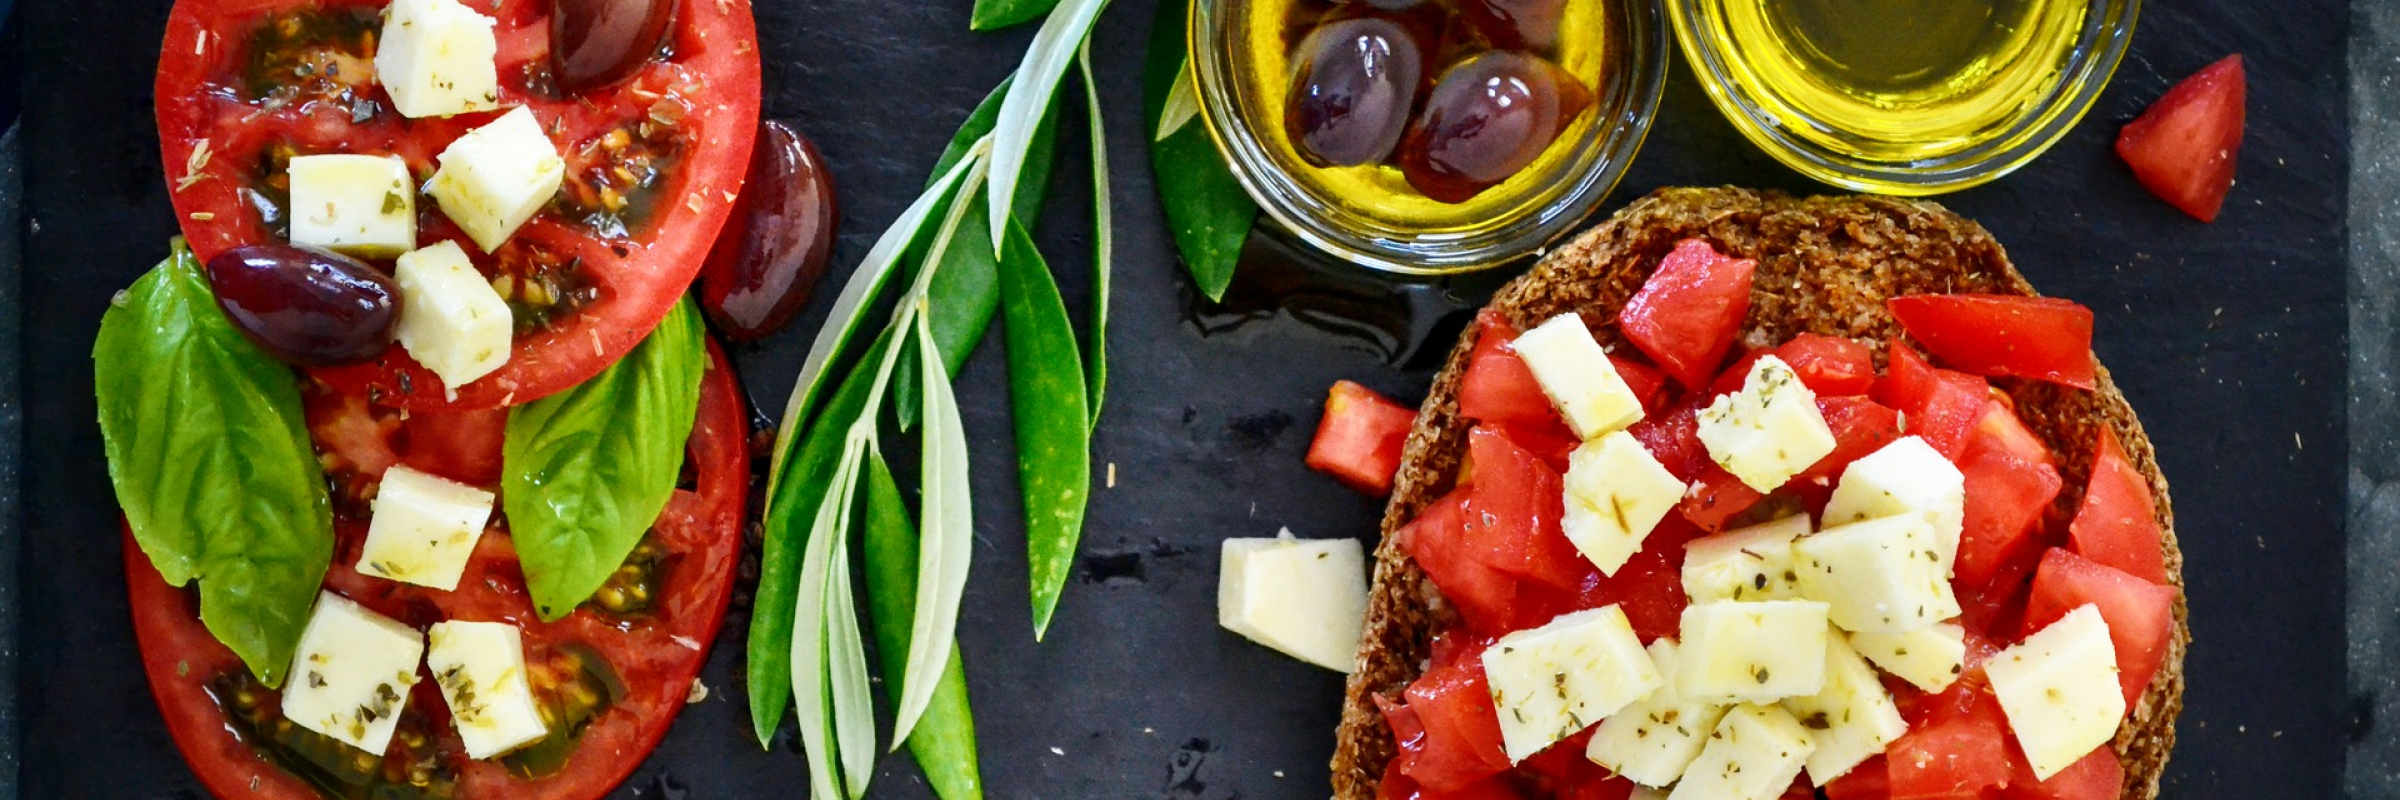 tomatoes, olives and oil